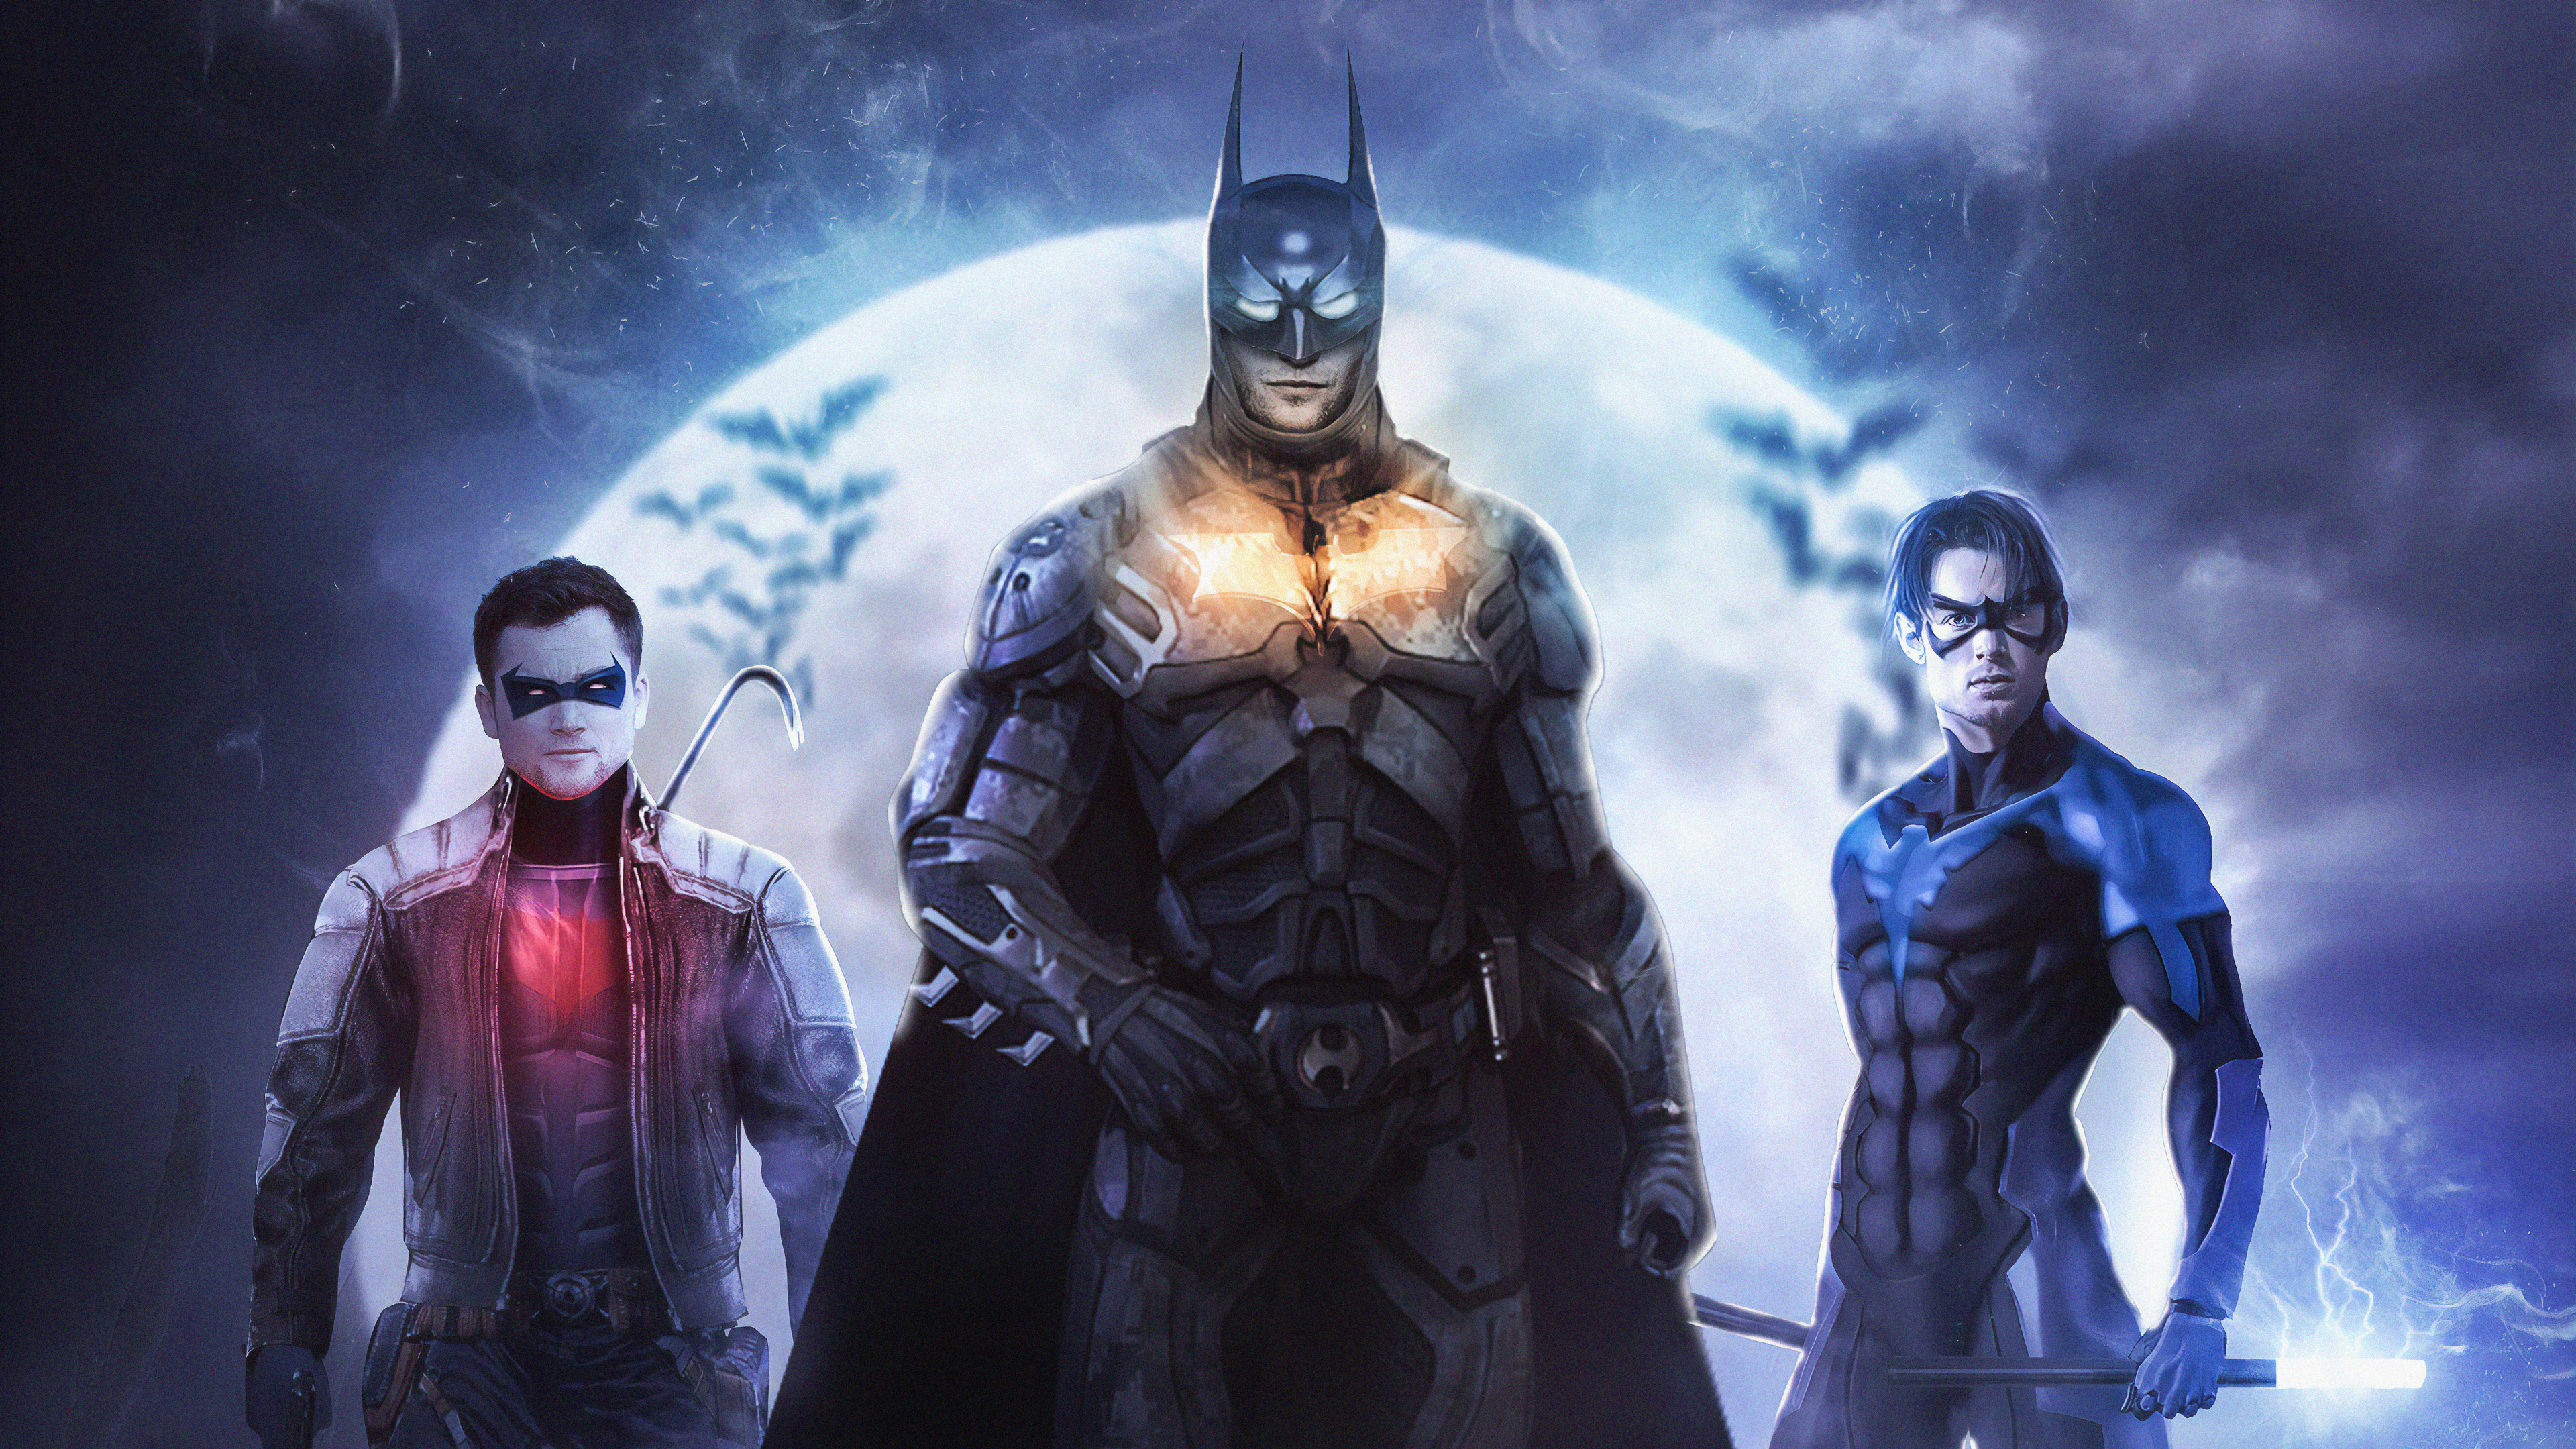 dc bat family 1563220398 - Dc Bat Family - superheroes wallpapers, red hood wallpapers, nightwing wallpapers, hd-wallpapers, digital art wallpapers, batman wallpapers, artwork wallpapers, 4k-wallpapers